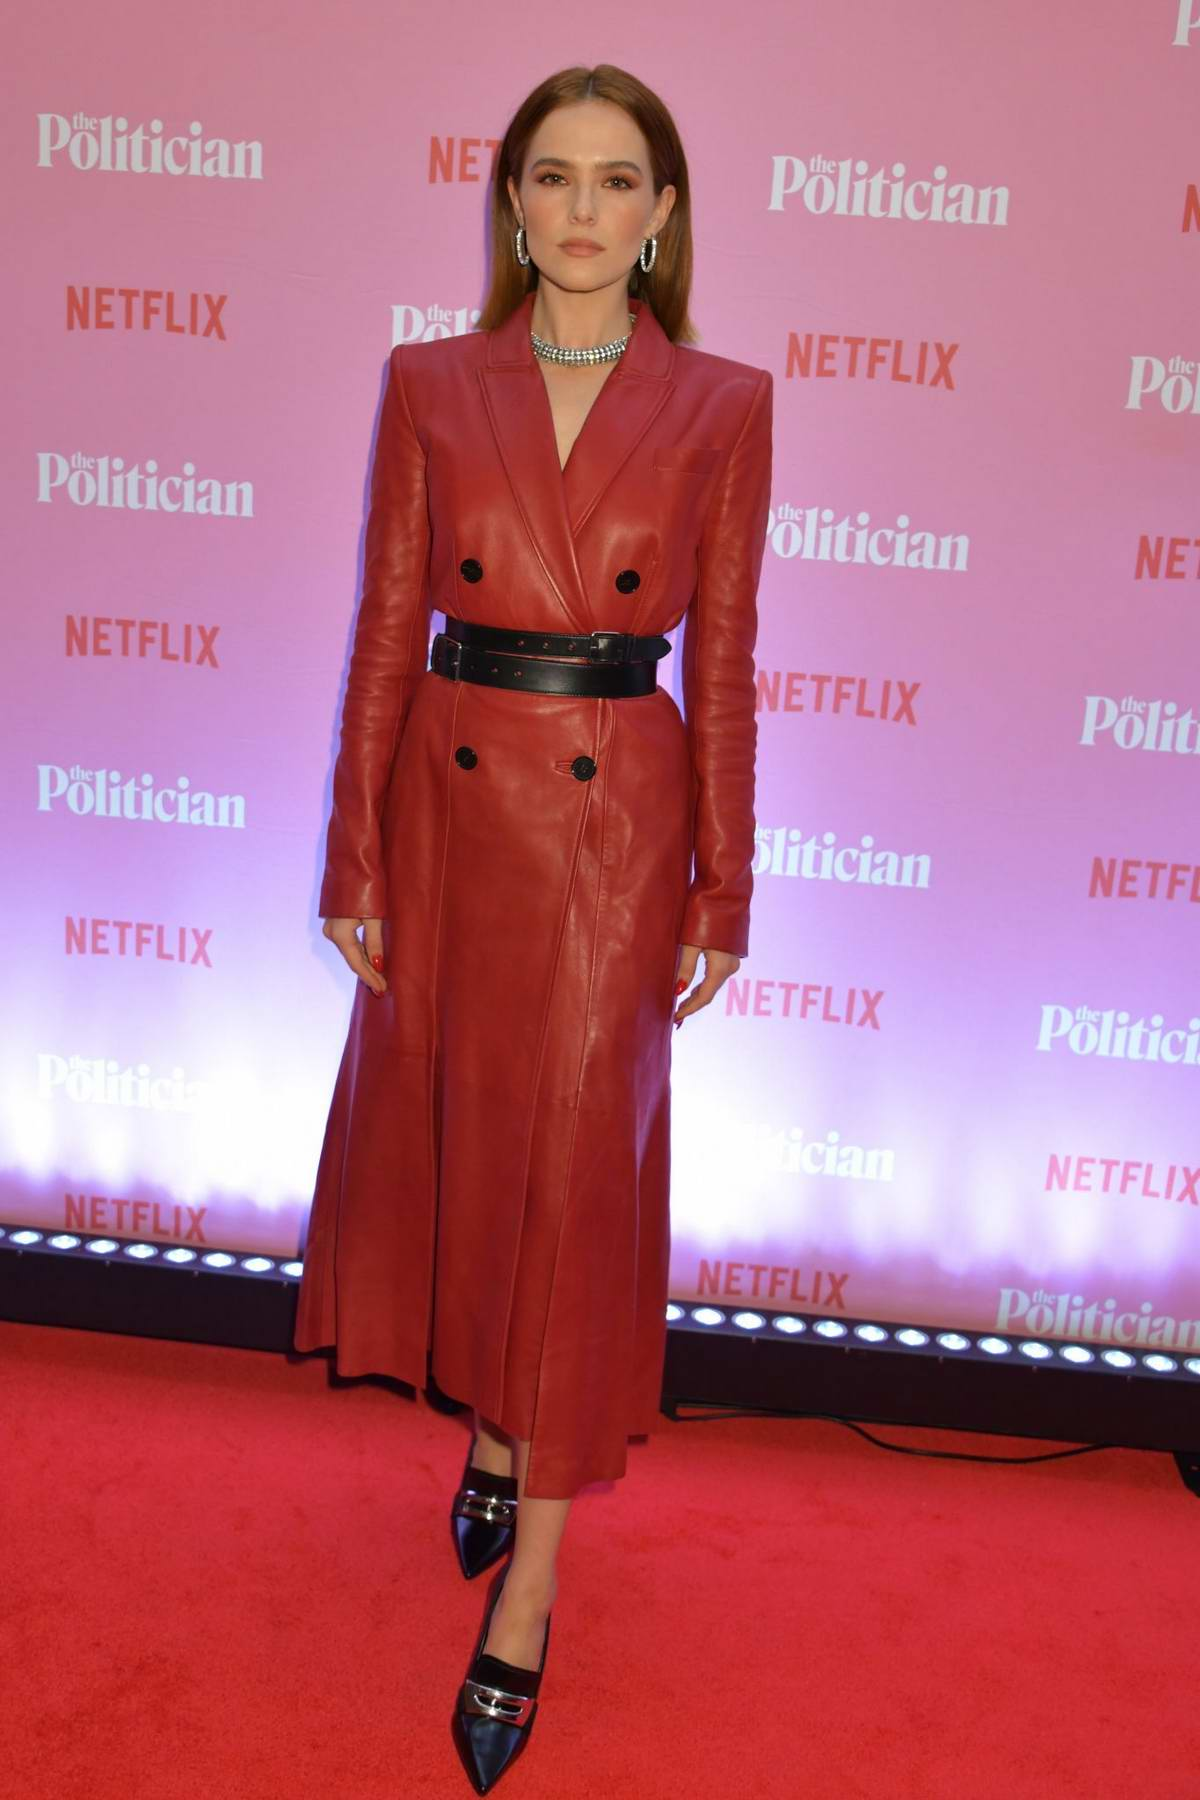 Zoey Deutch attends a special screening of Netflix's 'The Politician' at The Ham Yard Hotel in London, UK